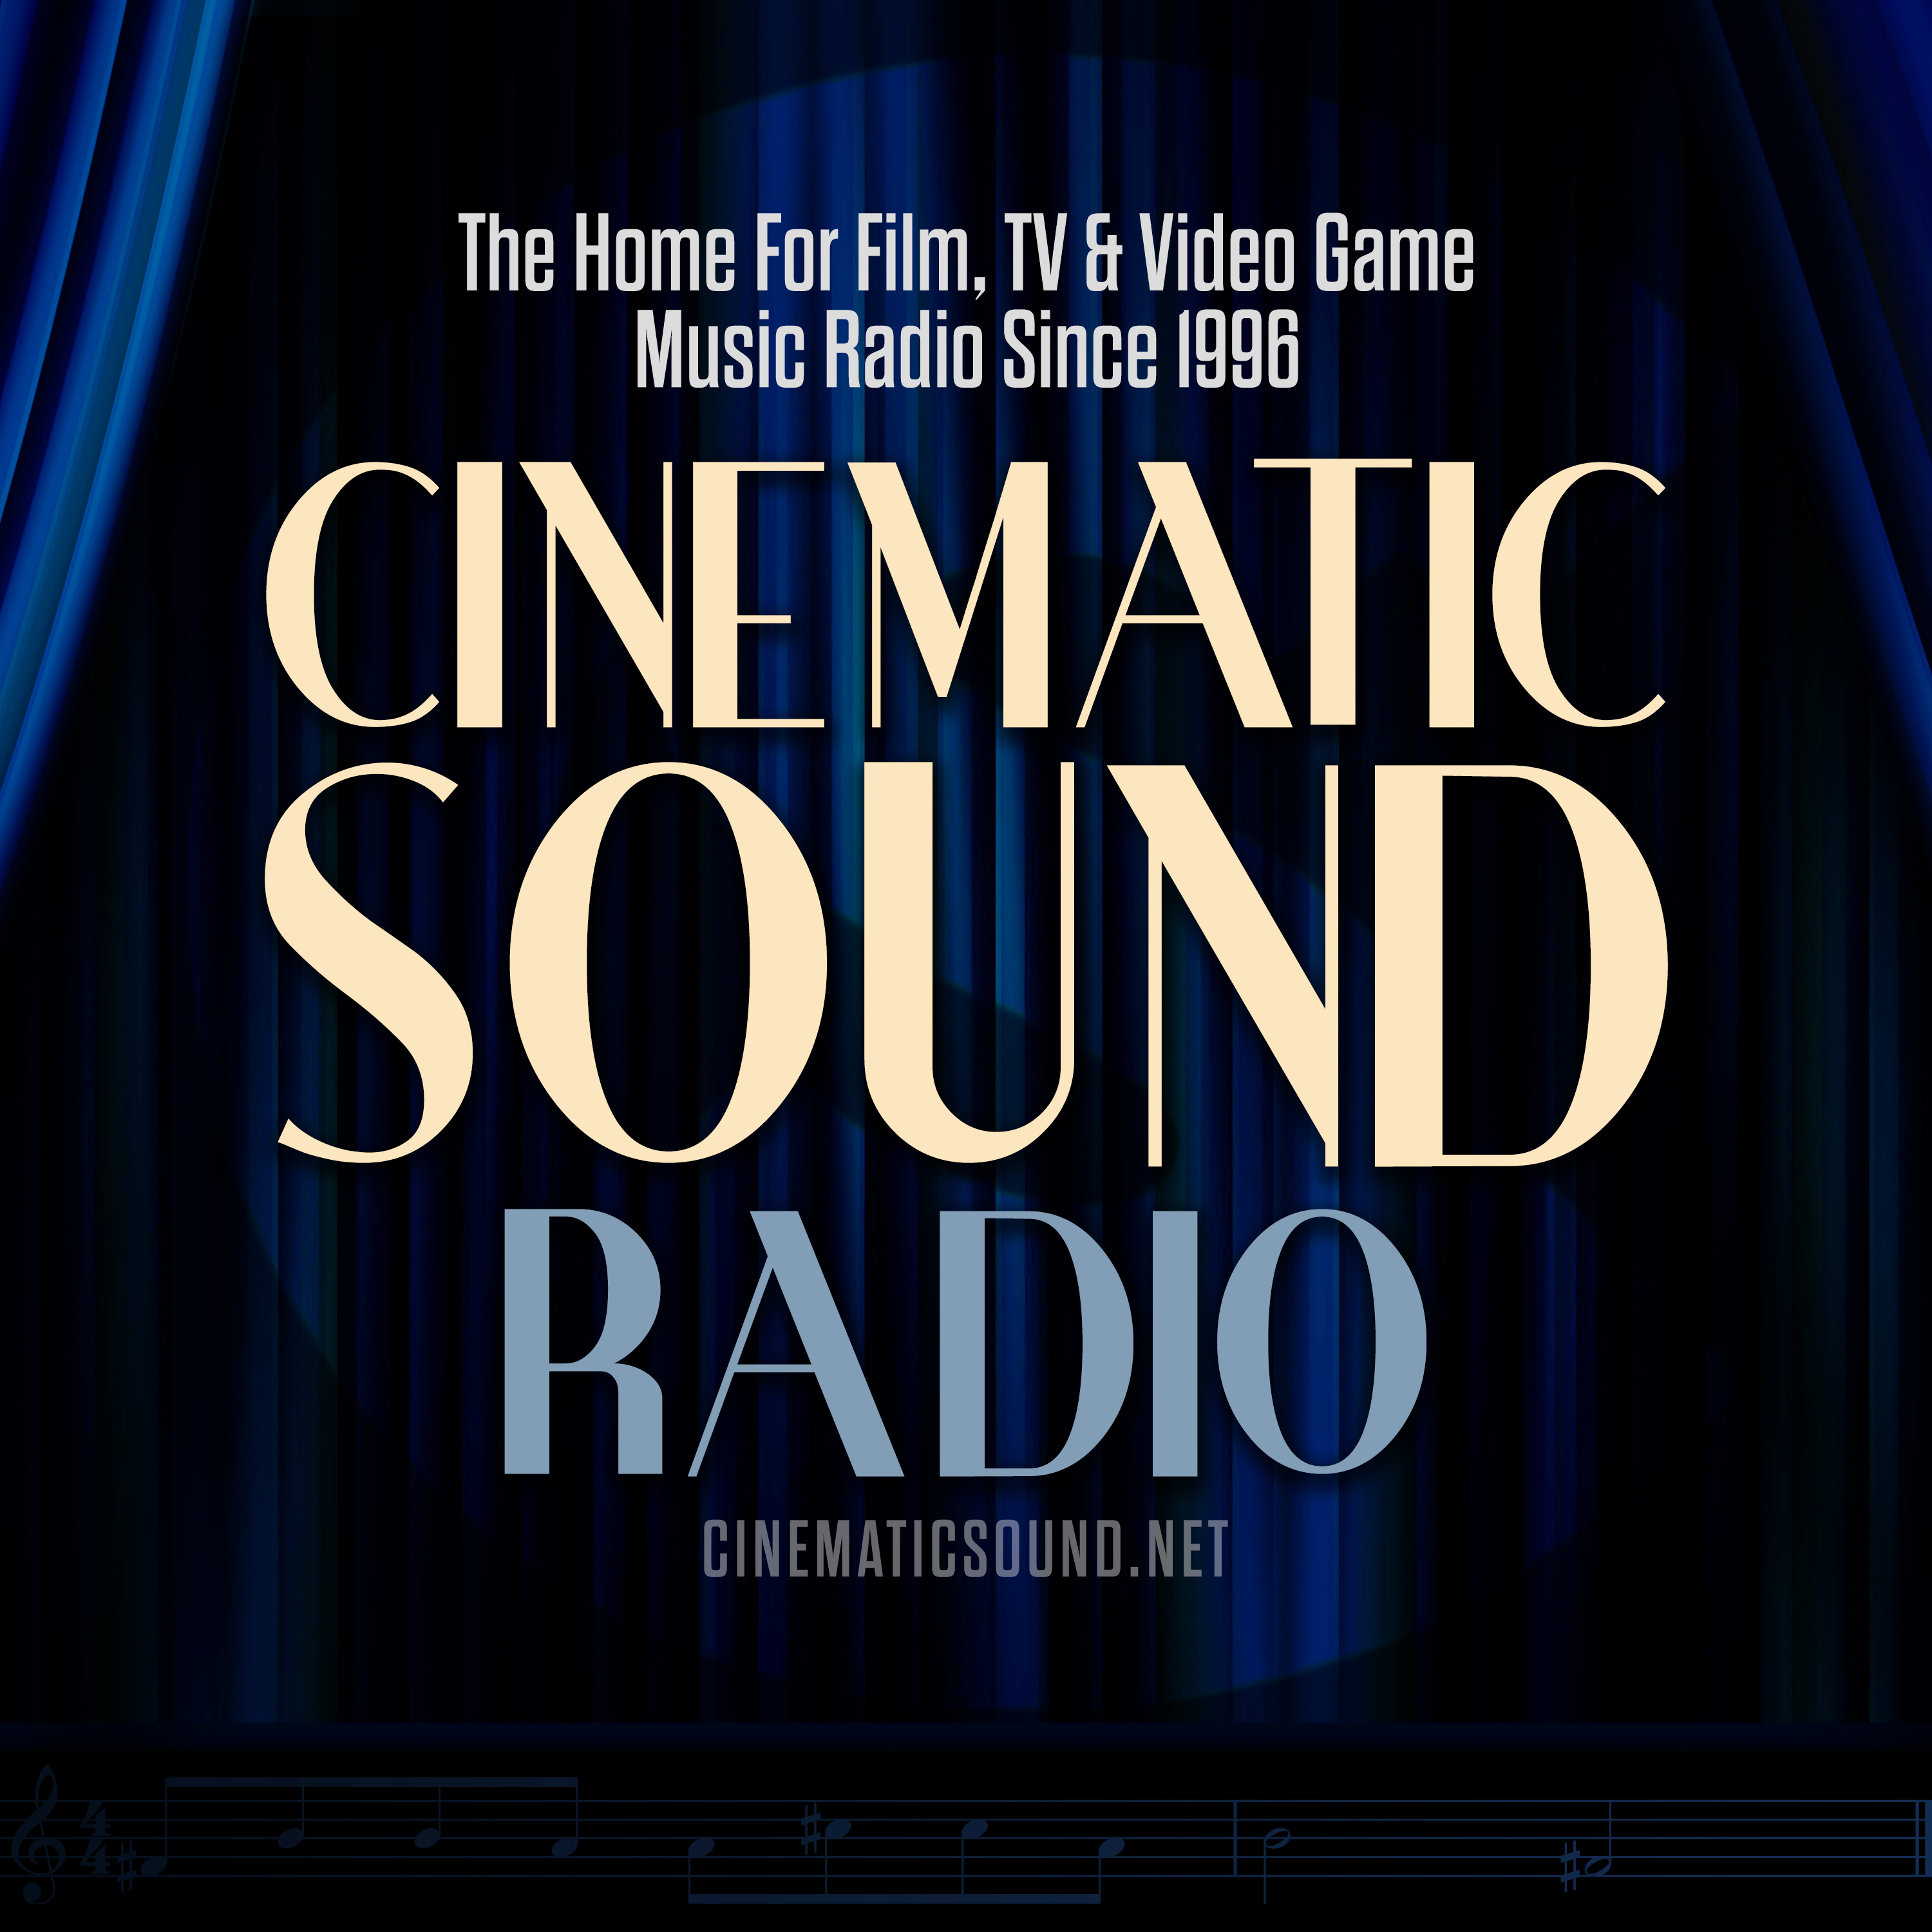 Cinematic Sound Radio - Soundtracks From Films, TV and Video Games